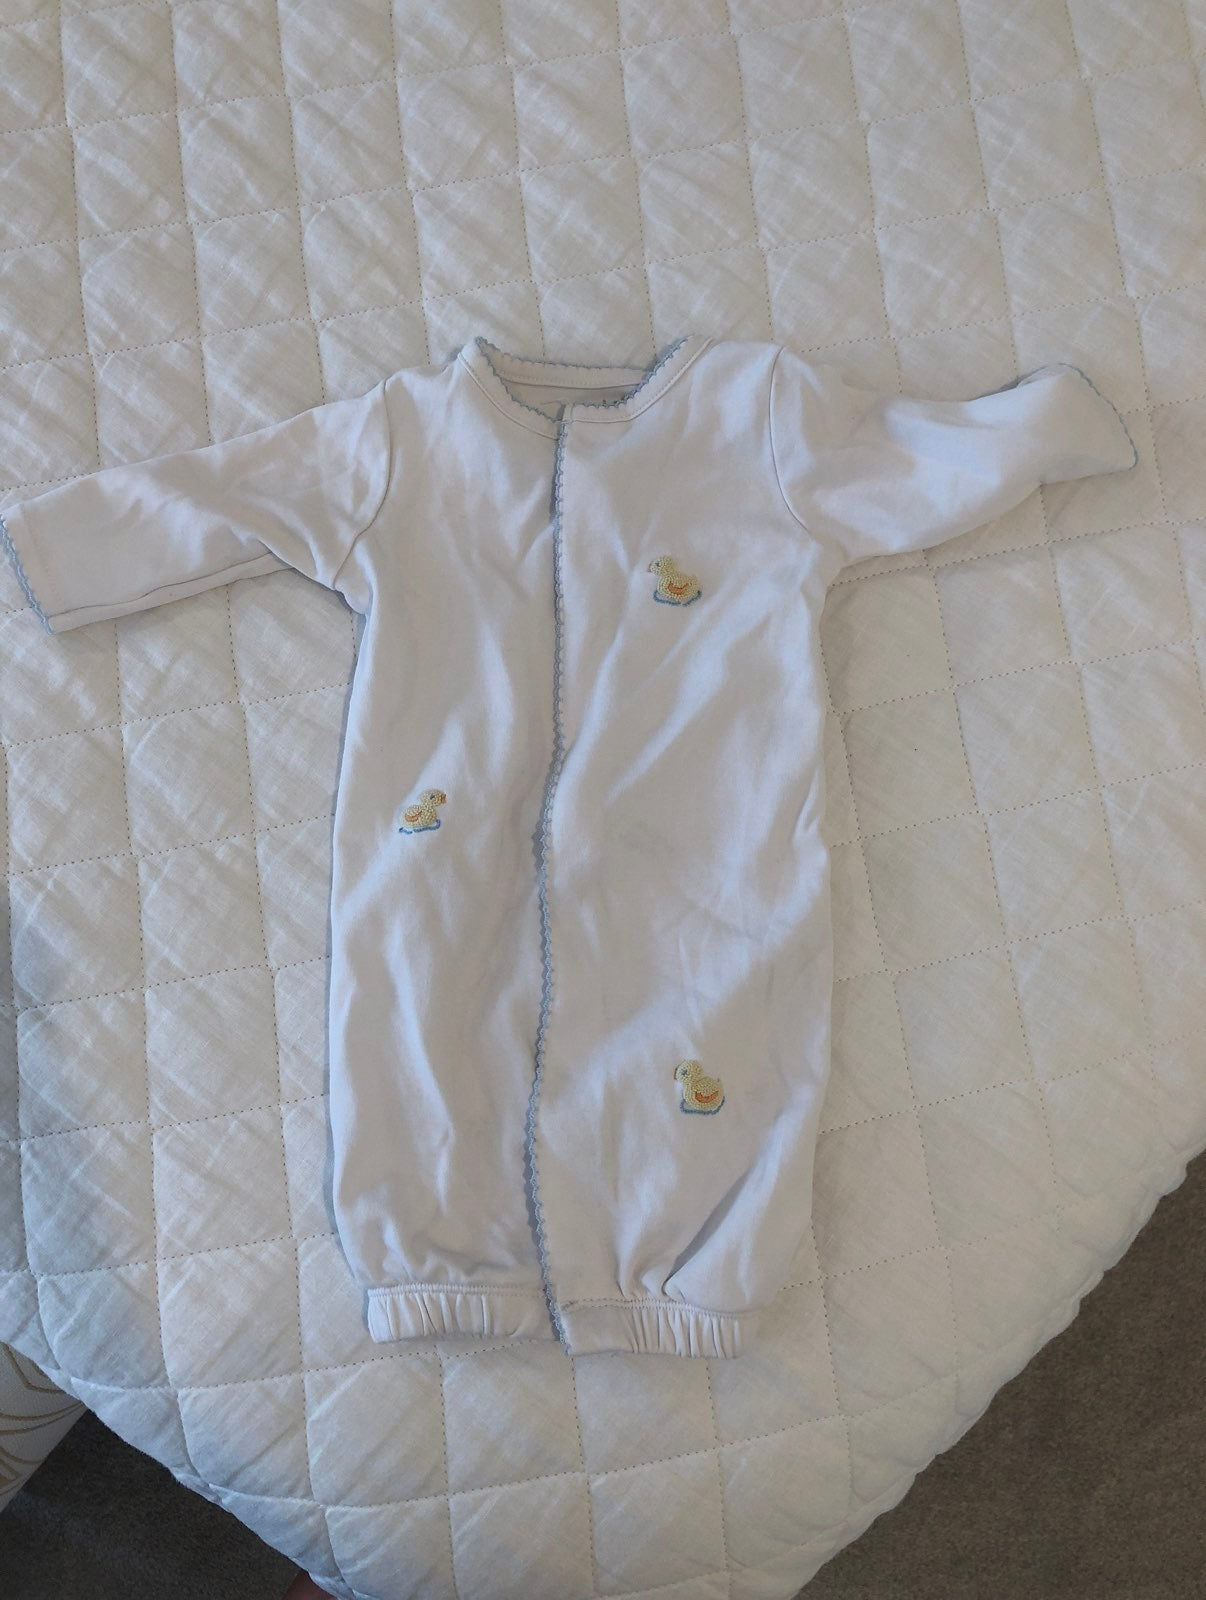 Mudpie baby gown